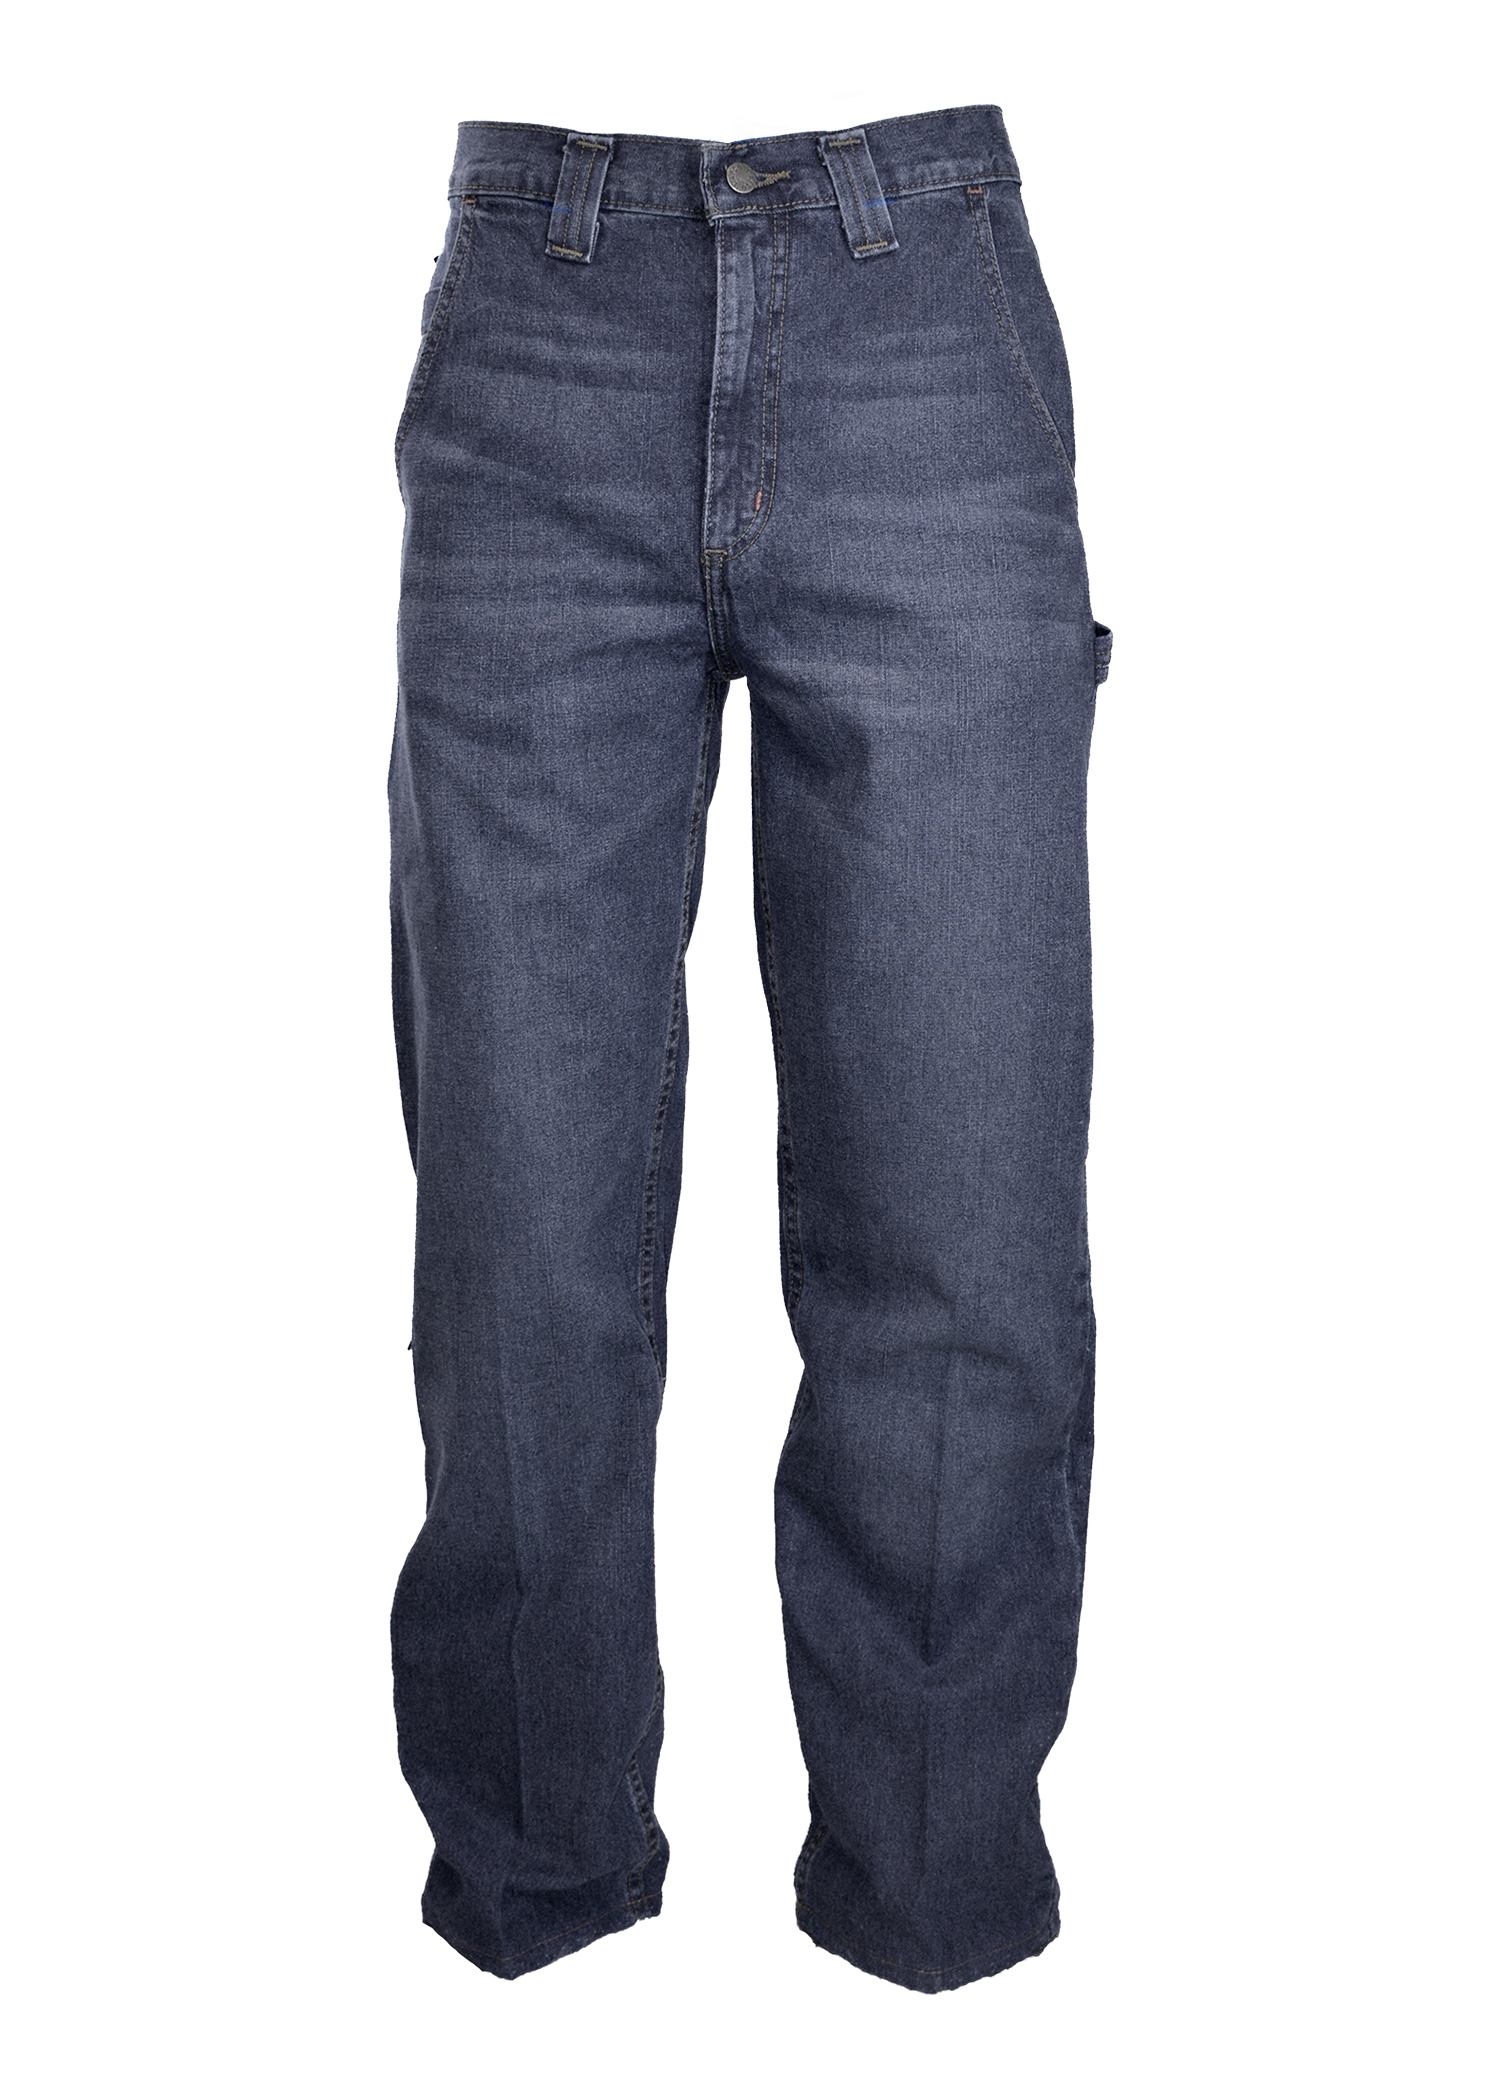 Lapco 10oz. FR Modern Carpenter Jeans | 100% Cotton-LAPCO